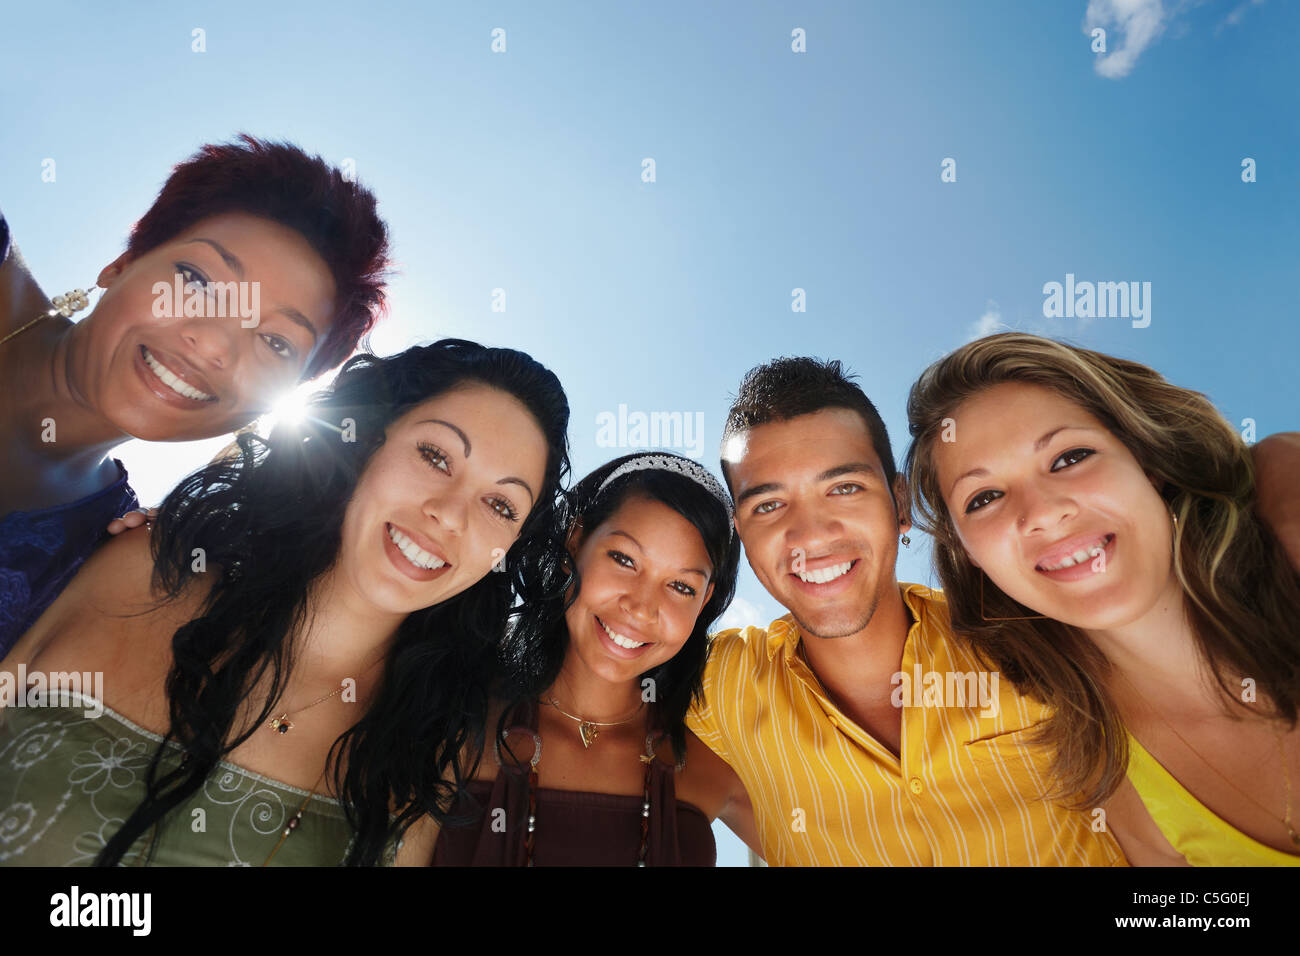 group of five young people looking at camera and smiling with sky in background. Low angle view, copy space - Stock Image